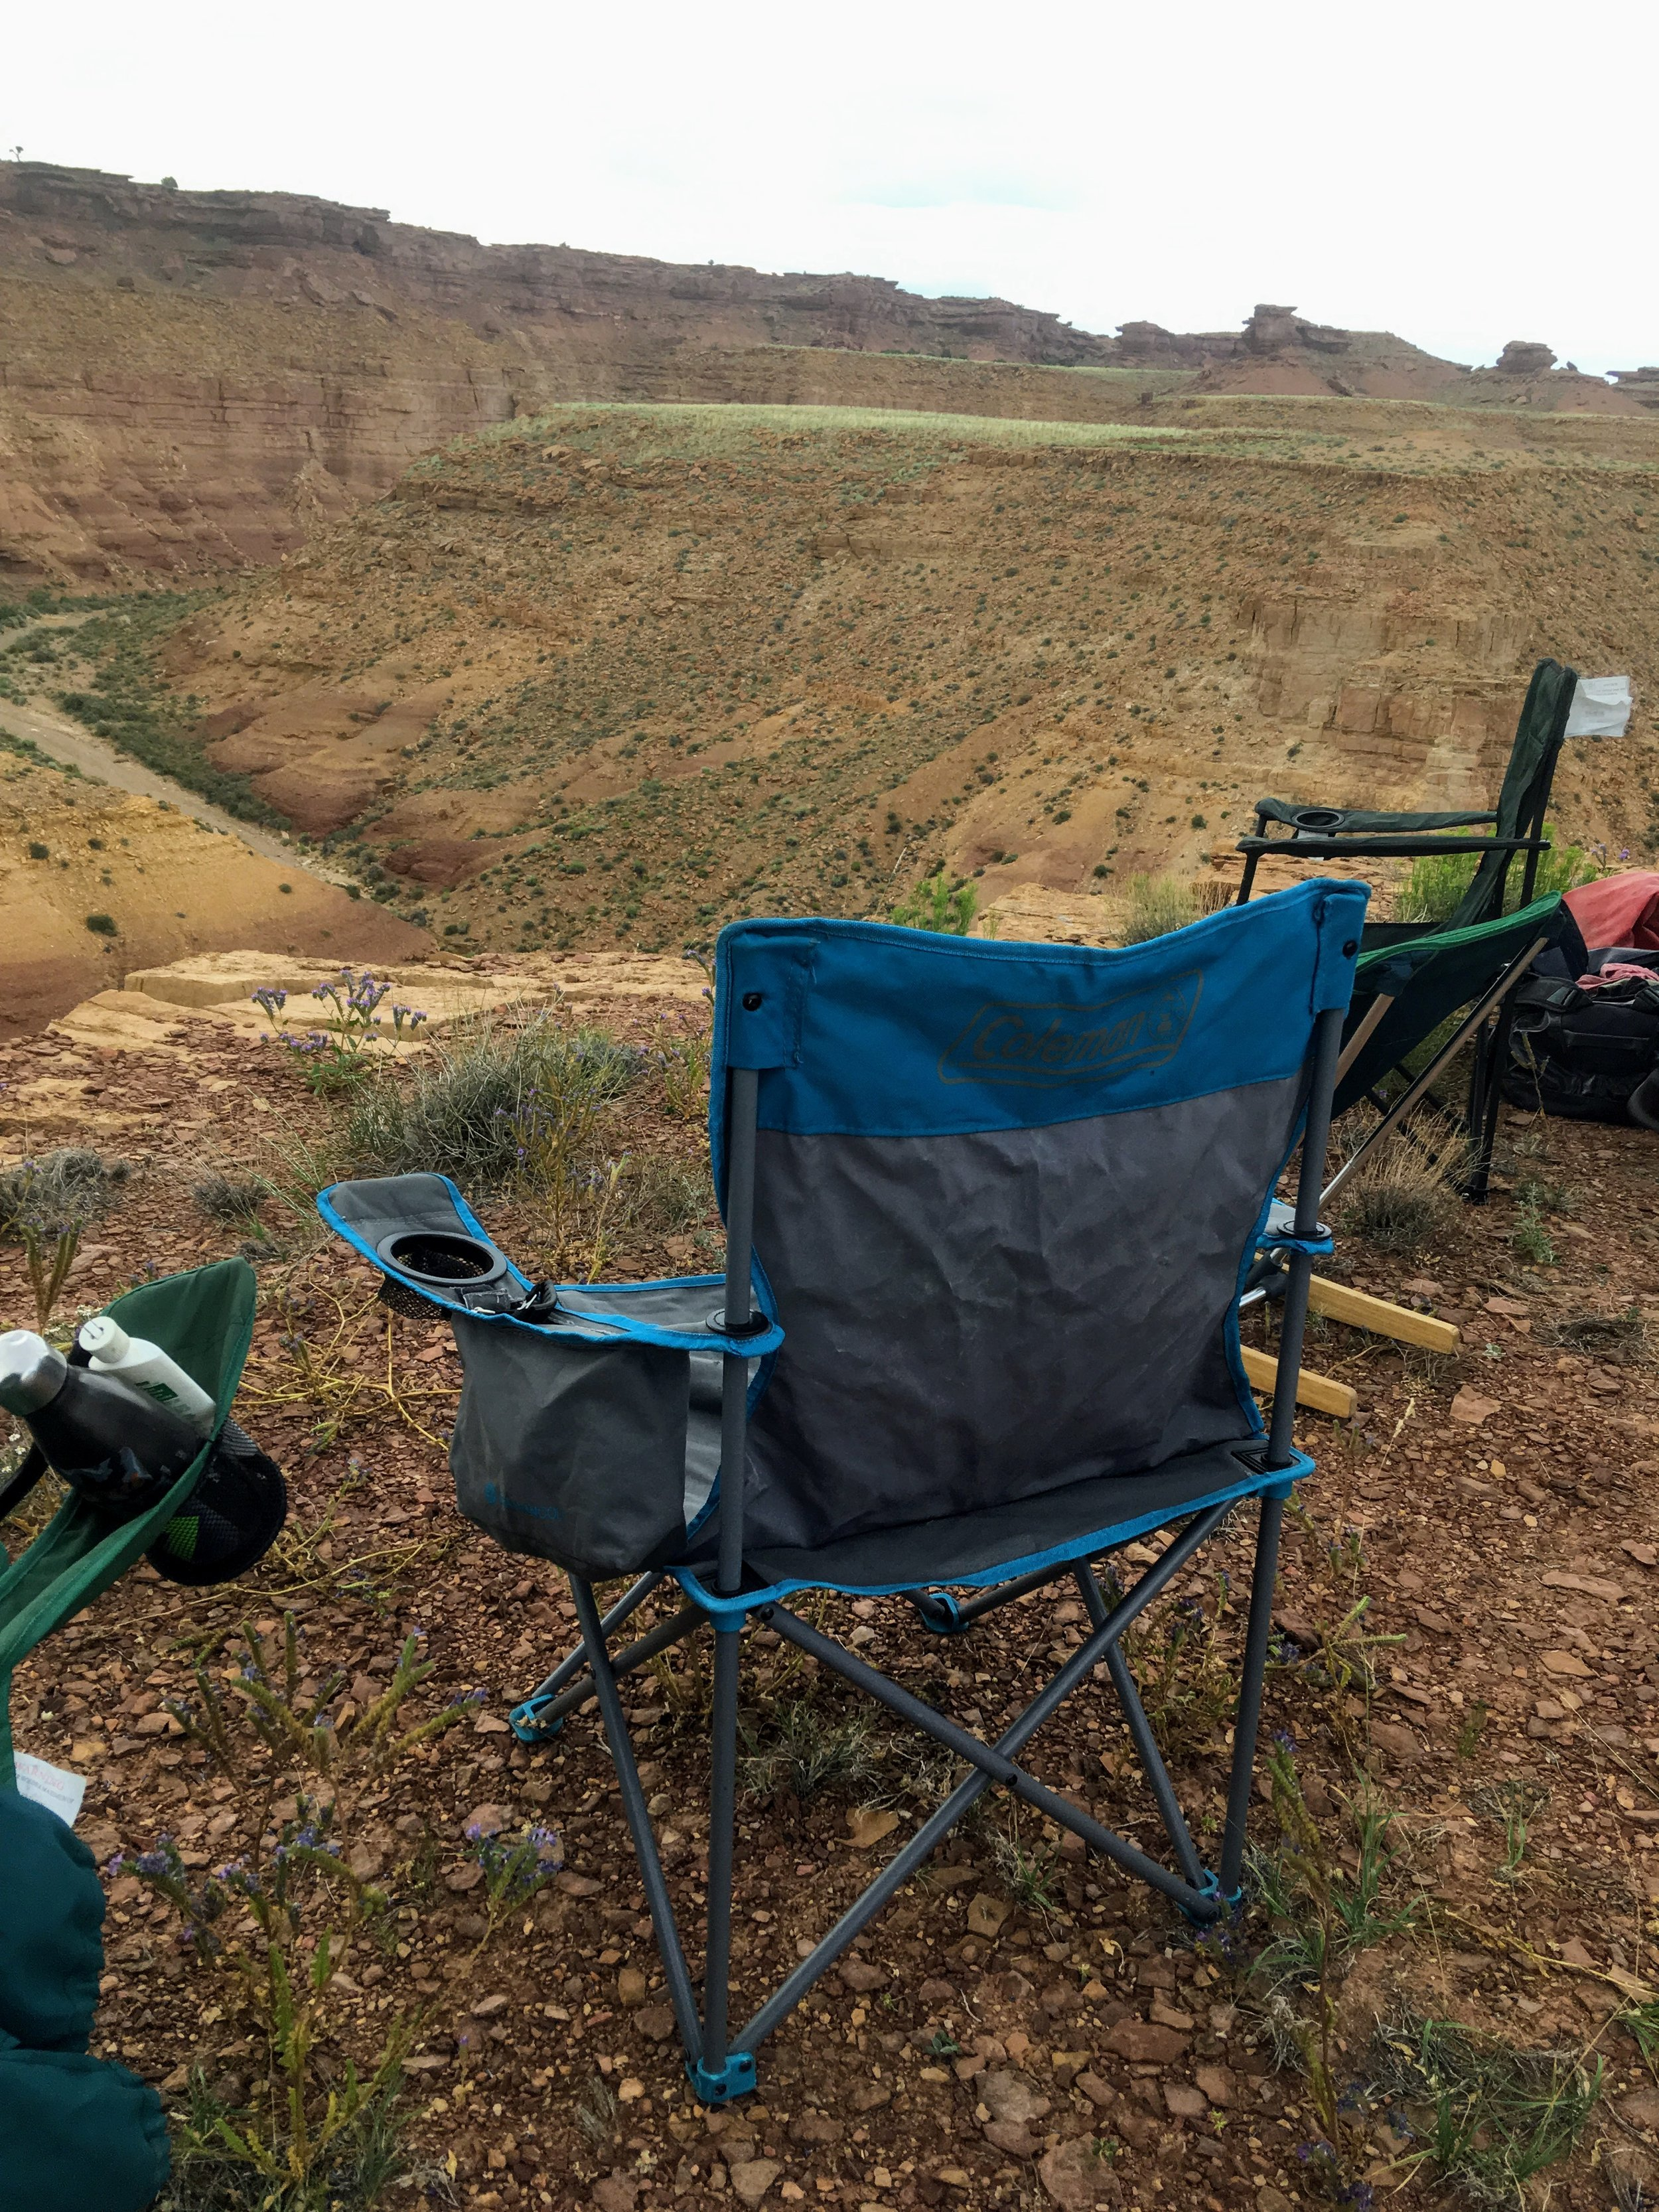 We tested the Coleman on a few desert camping trips and especially liked the generous drink pockets, which have enough room to also hold sunscreen, hats, or cameras.   Photo courtesy Josette Deschambeault